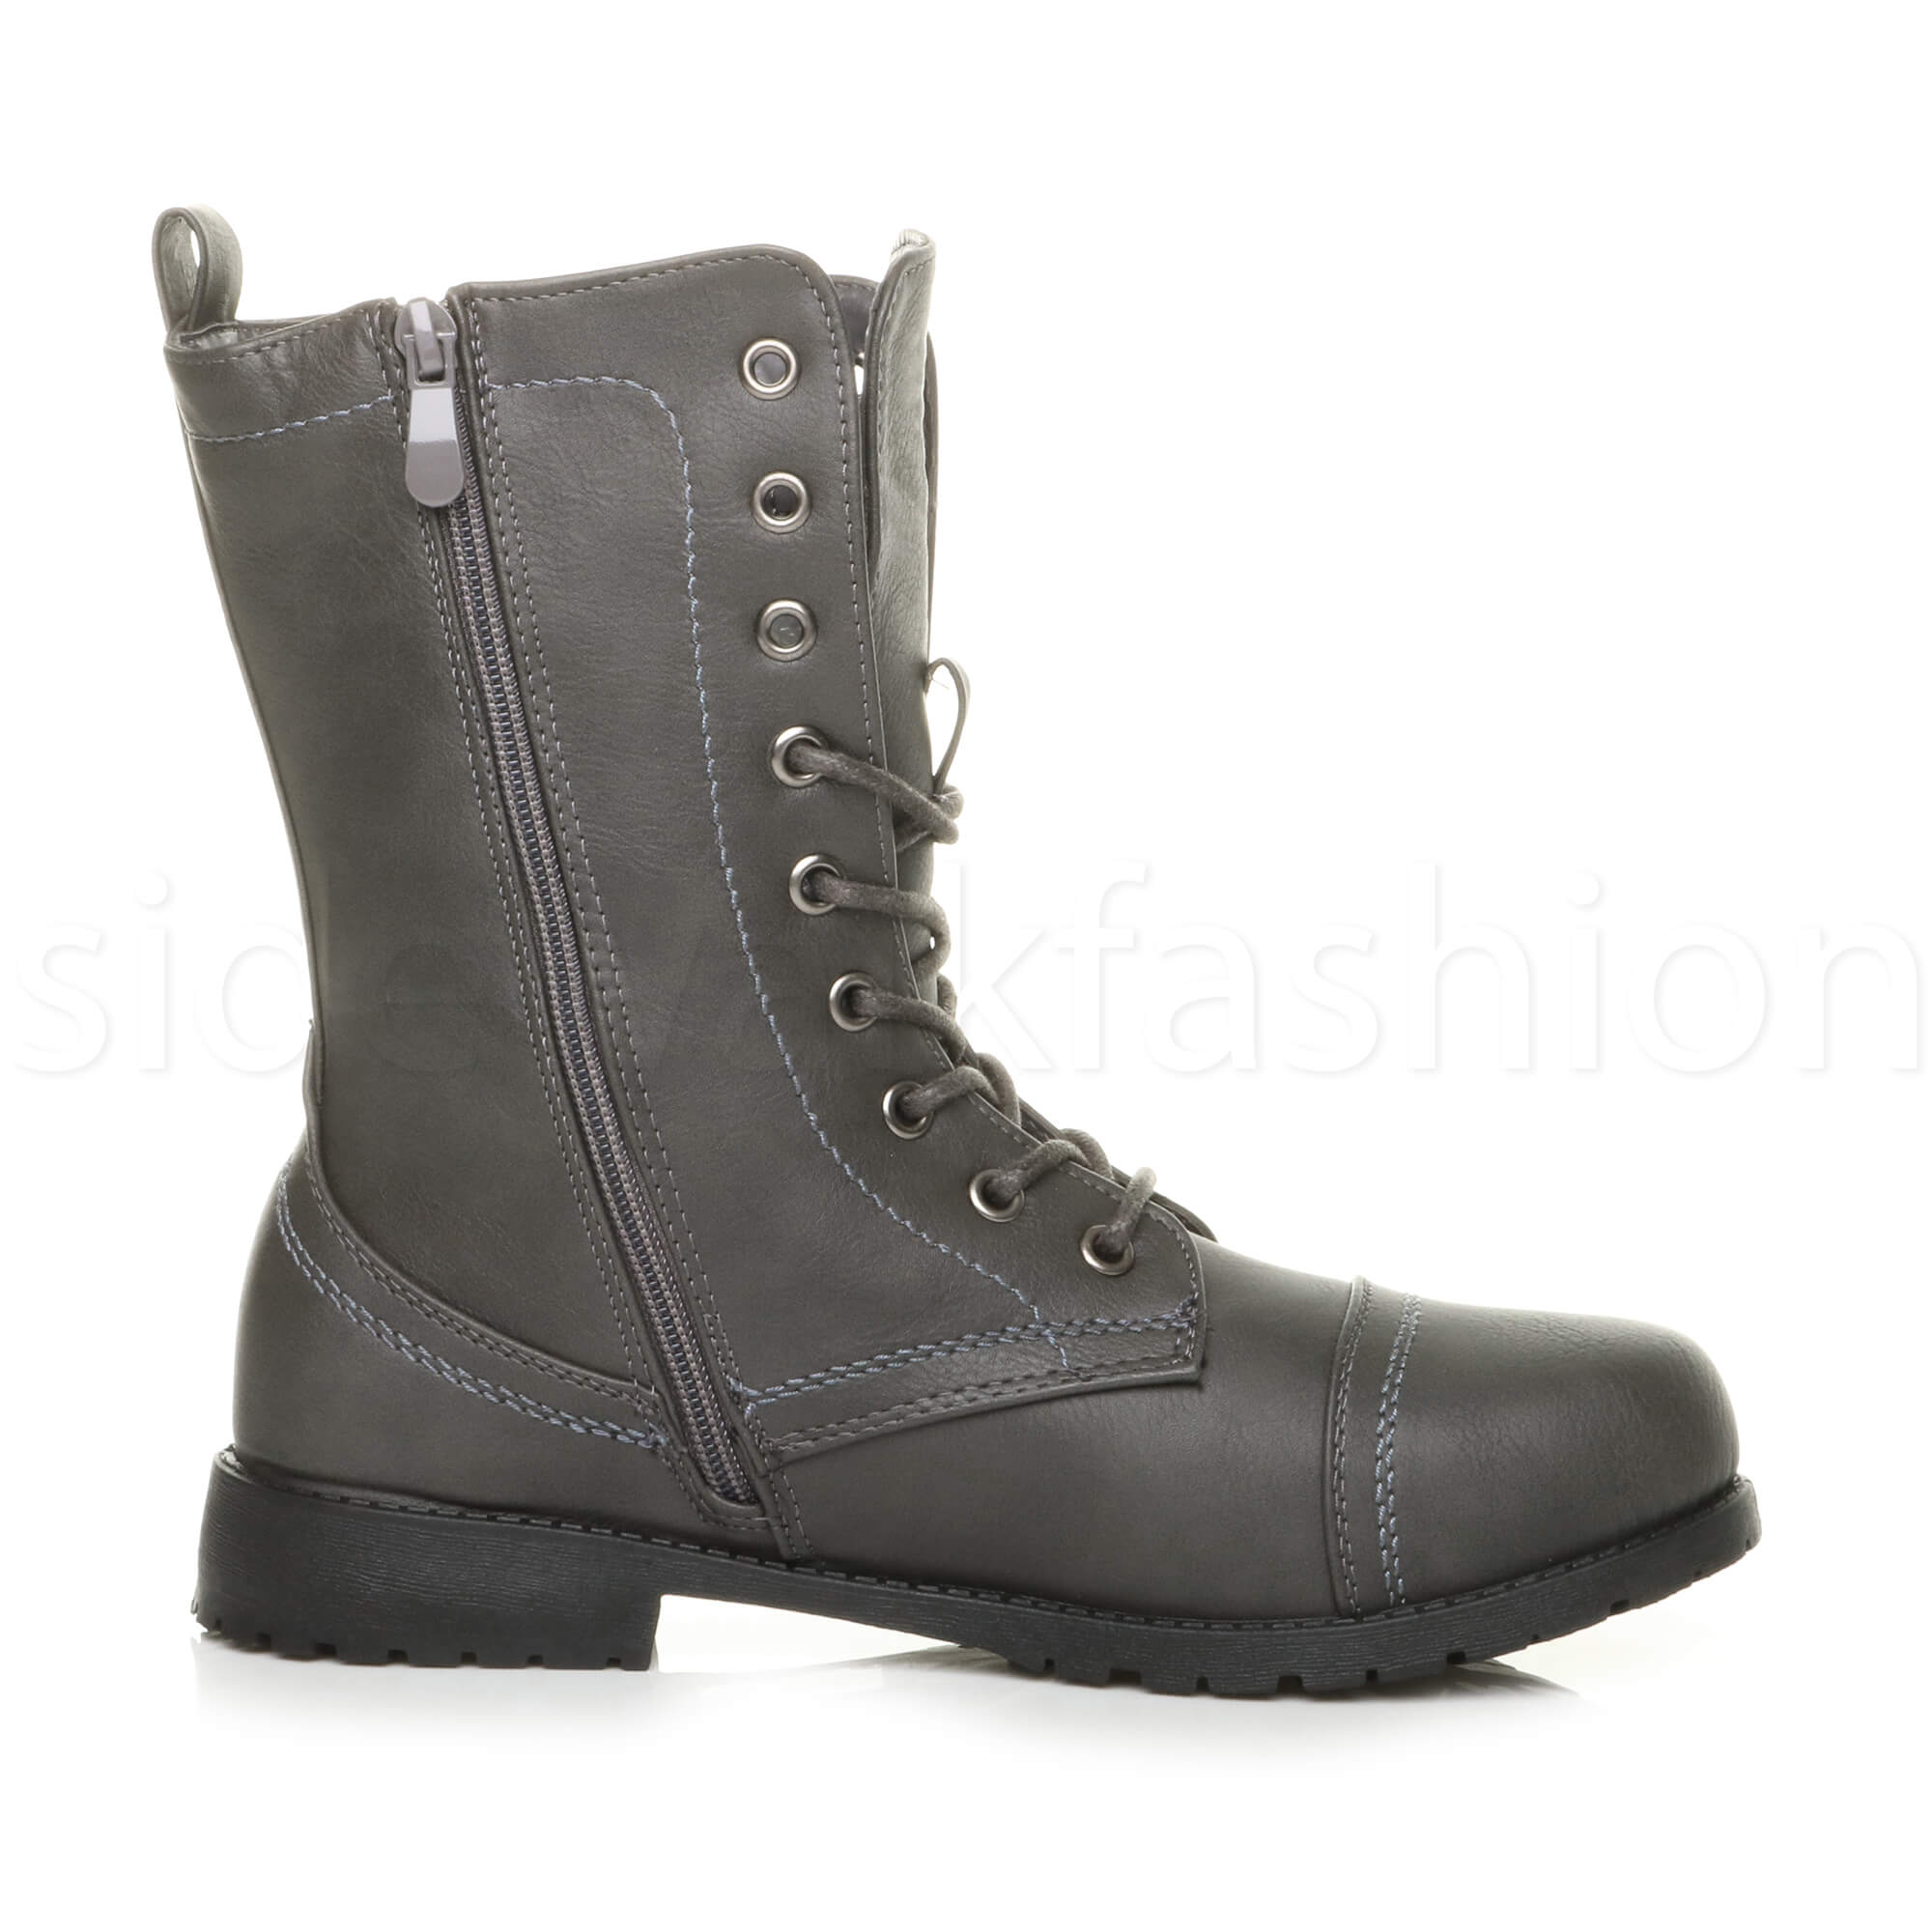 Womens-ladies-low-heel-flat-lace-up-zip-combat-biker-military-ankle-boots-size thumbnail 84